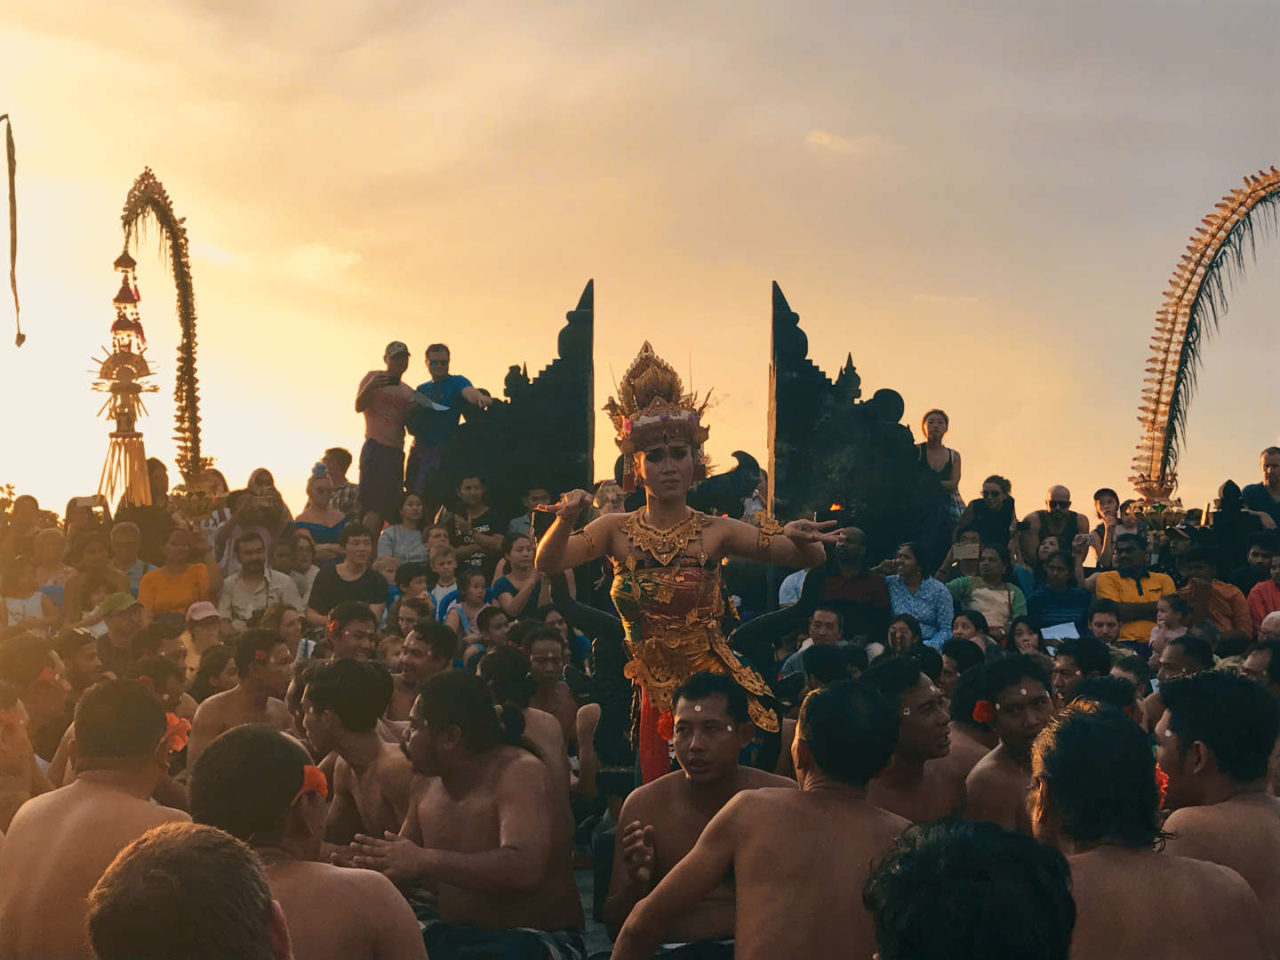 https://thesubmarine.it/wp-content/uploads/2018/01/Kecak-a-Uluwatu-6-1280x960.jpg